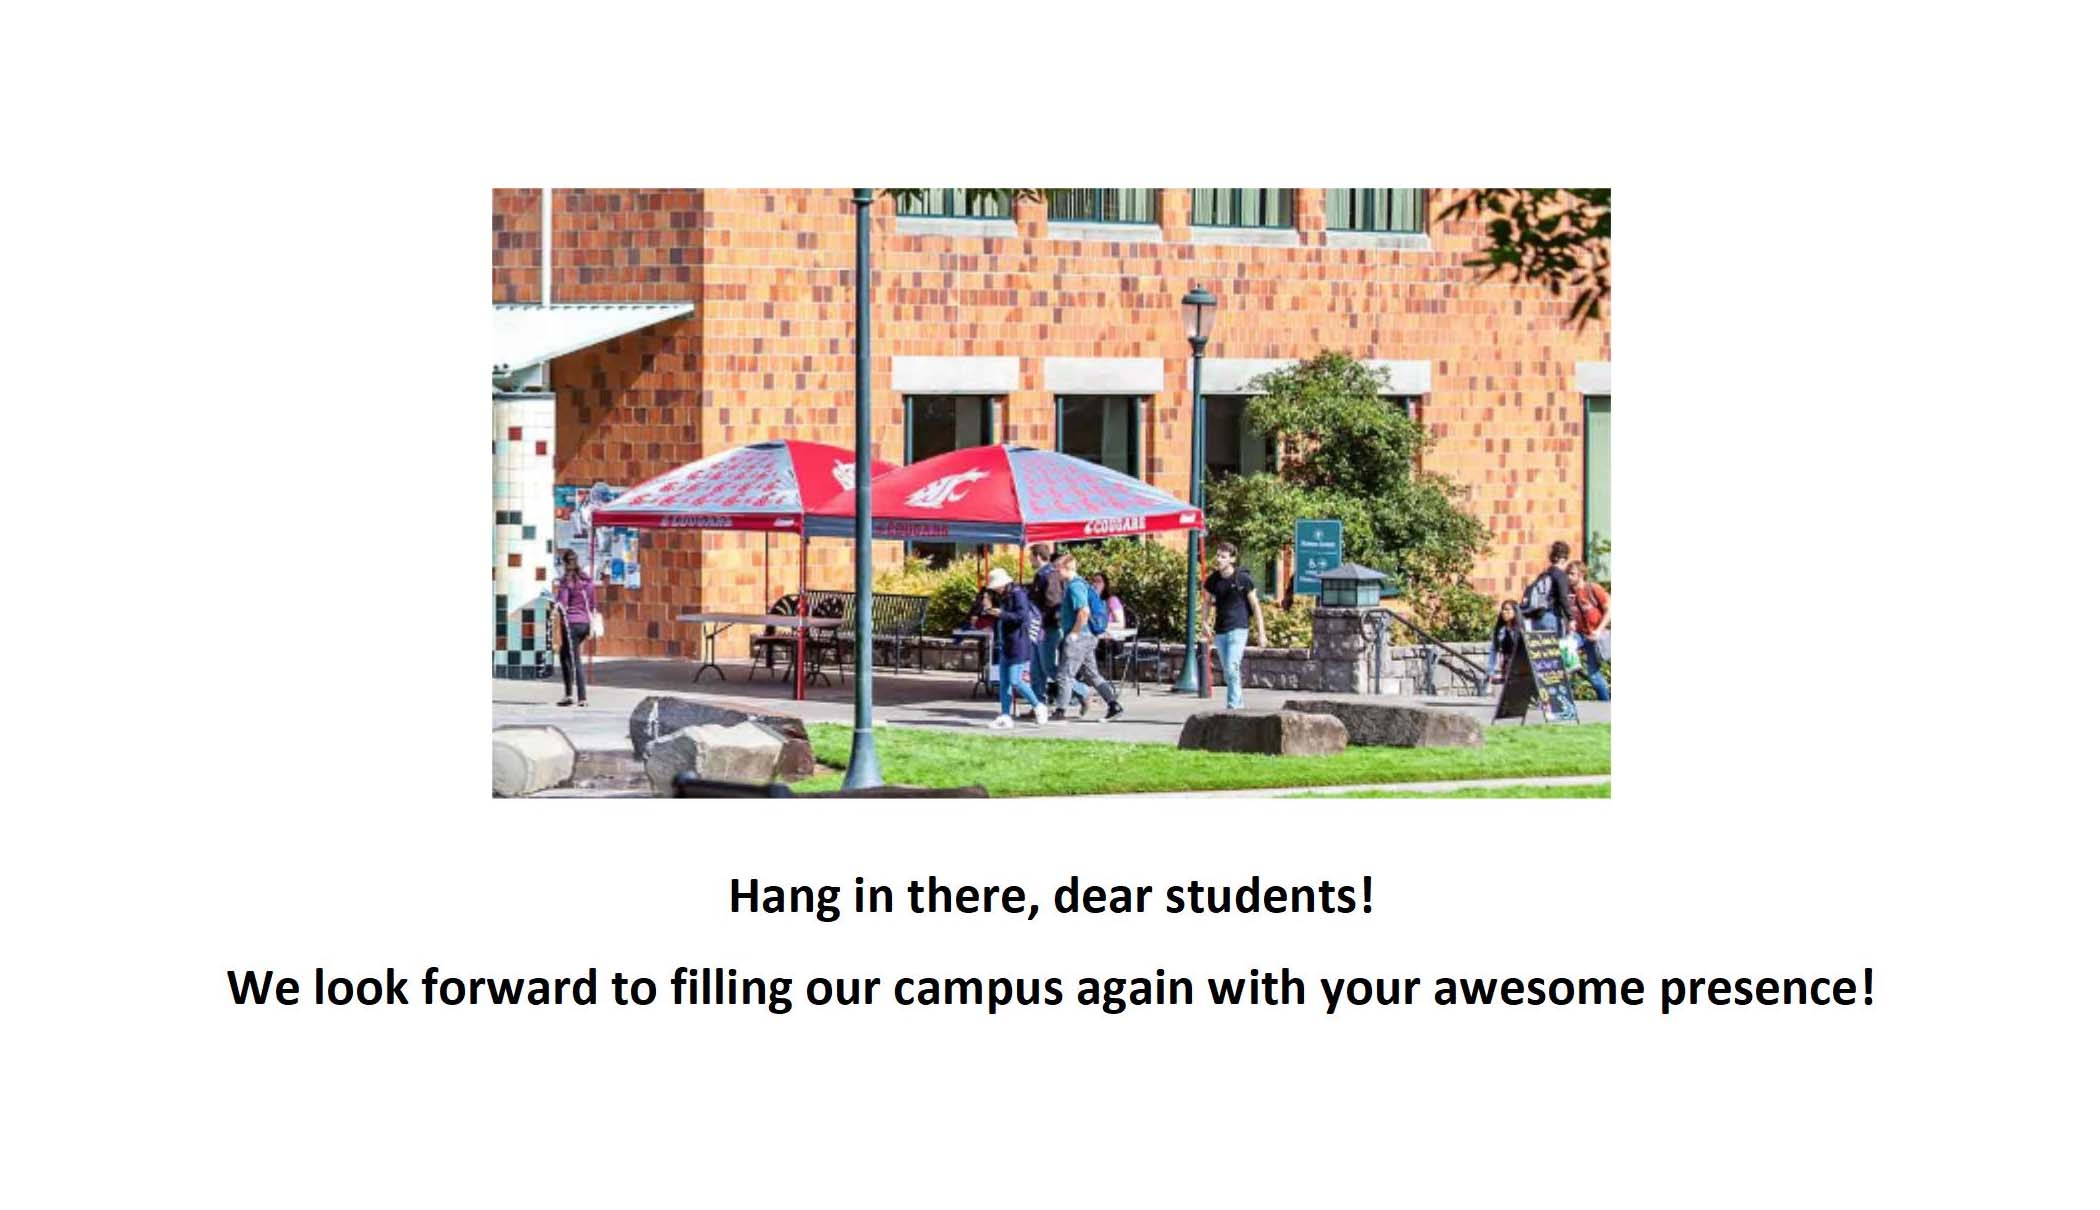 Cougar tent by library building photo with text; Hang in there, dear students! We look forward to filling our campus again with your awesome presence!